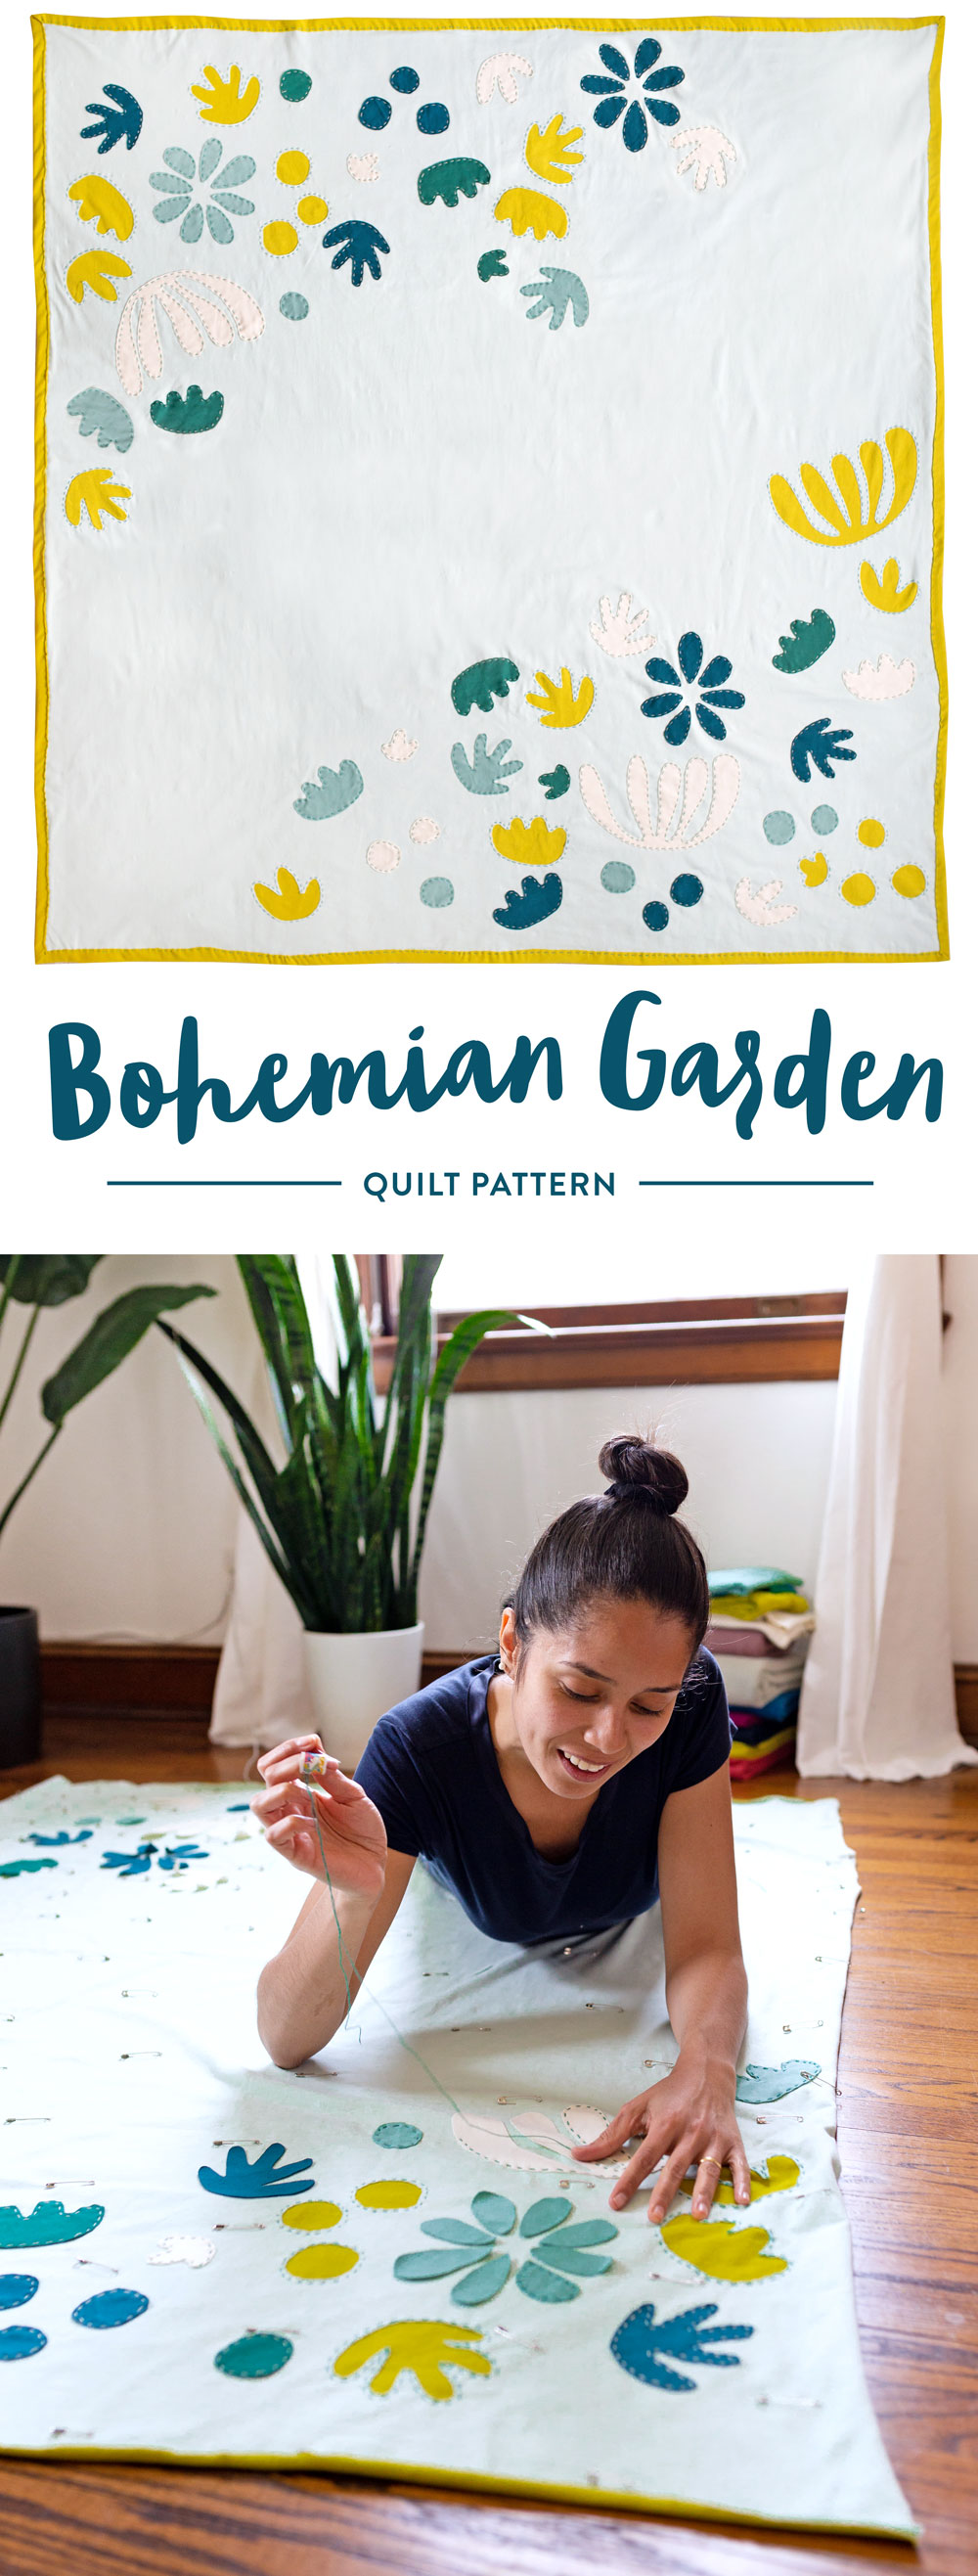 The Bohemian Garden quilt pattern includes three variations – one of them is a whole-cloth quilt!